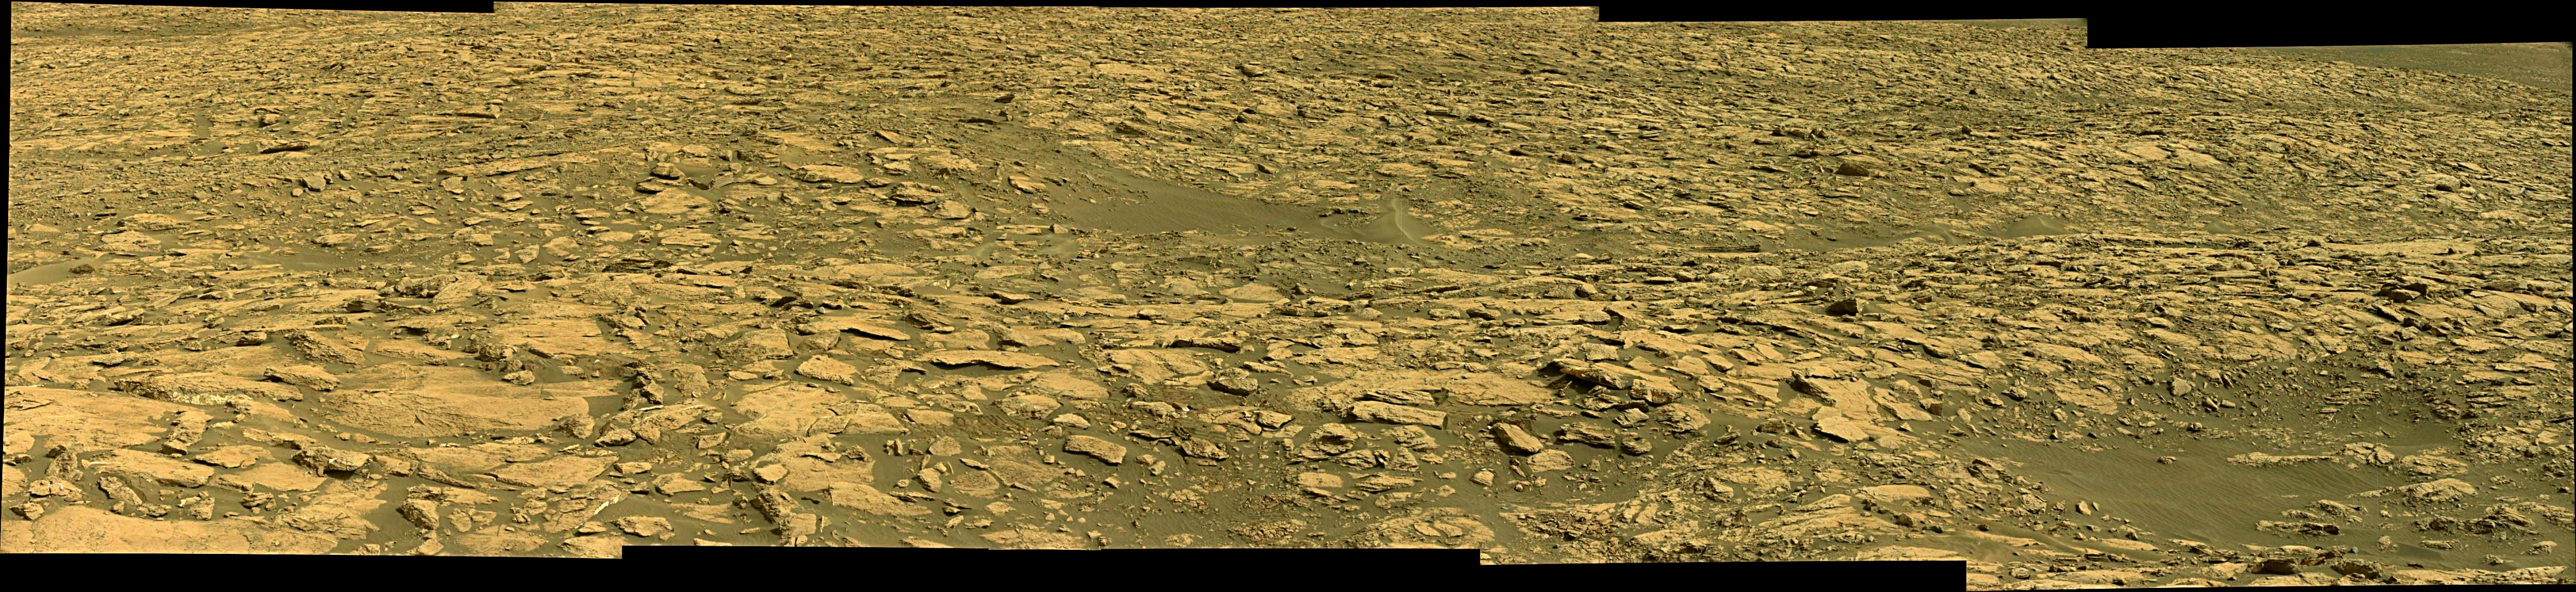 panoramic-curiosity-rover-view-1e-sol-1455-was-life-on-mars